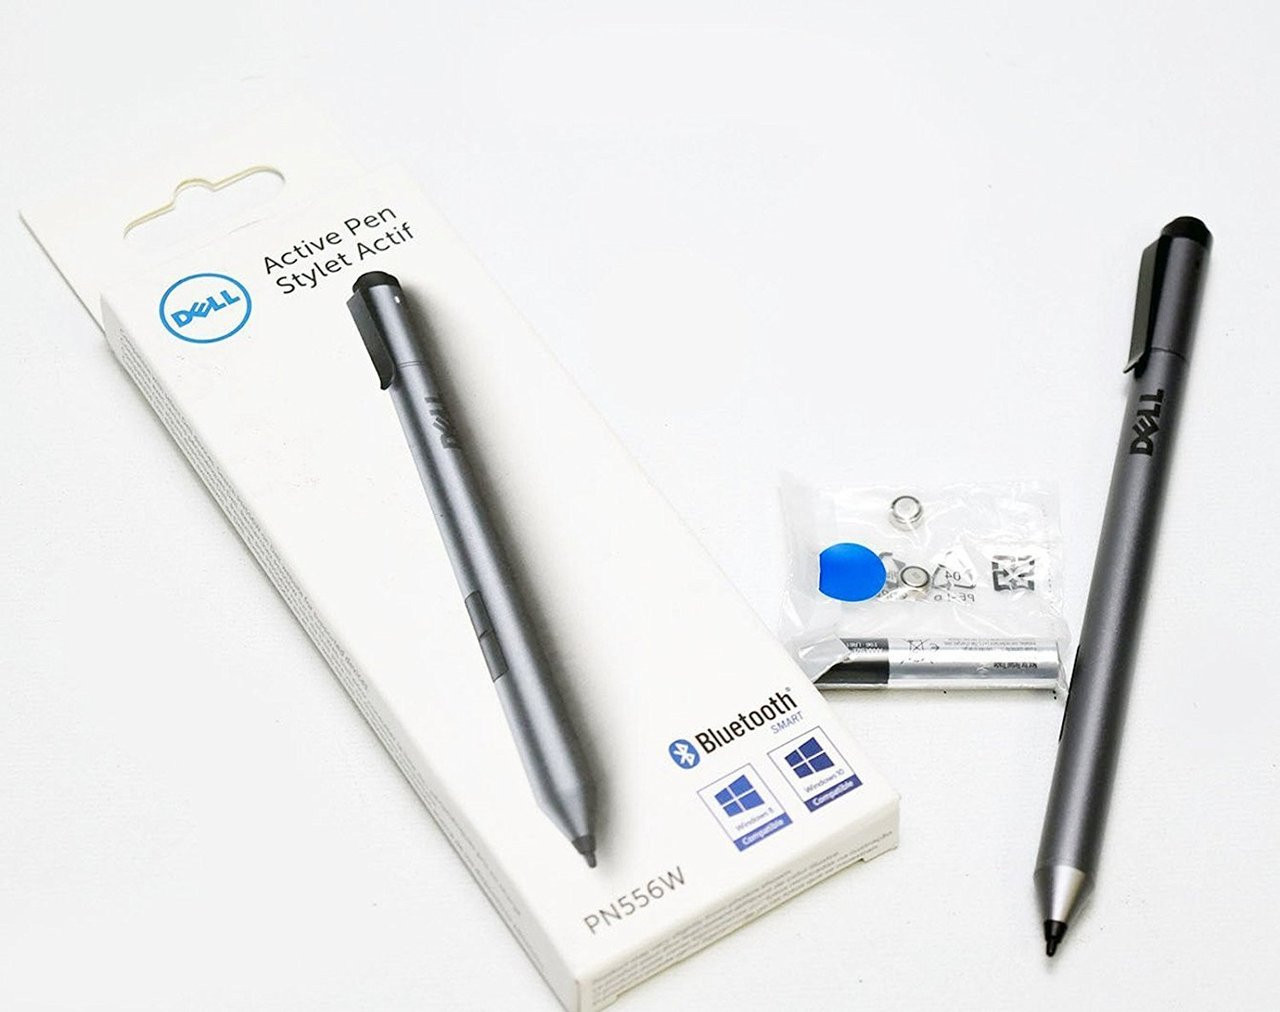 5855 Dell Active Stylus Pen compatible with New Dell XPS 15 9570 touch XPS 9575 2-in-1 XPS 13 9365 2-in-1 ,Venue 8 Pro 179 Latitude 511 10 Pro 5175 XPS 12 7275 9250 11 5056